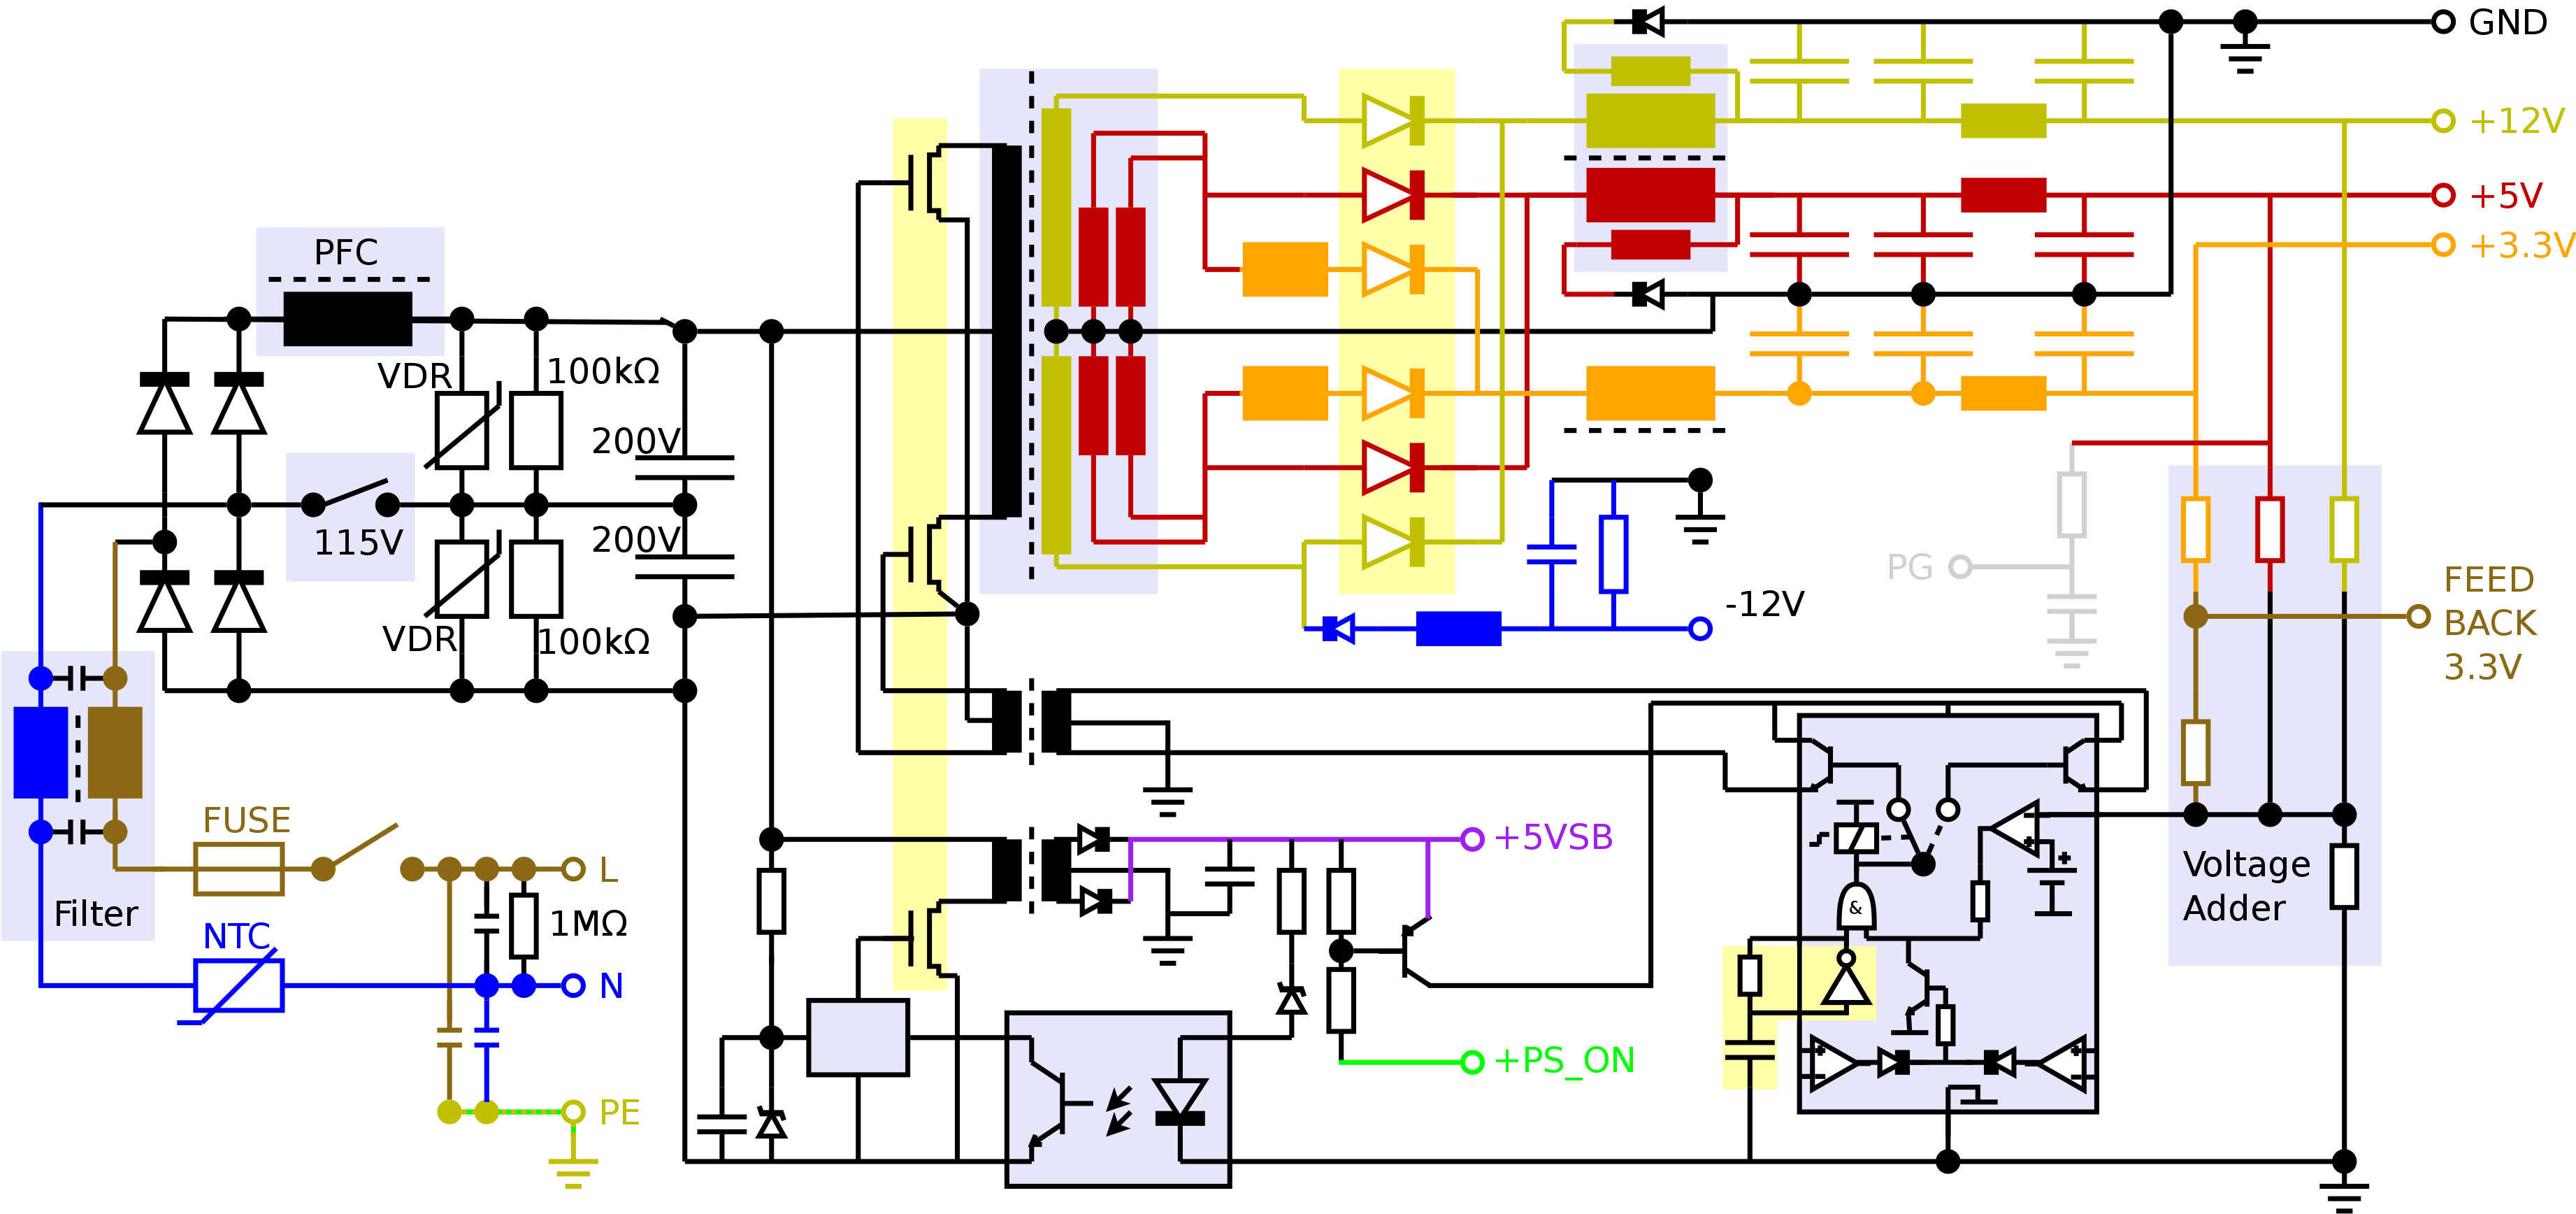 hight resolution of wiring diagram pc power supply for computer the adorable with atwiring diagram pc power supply for